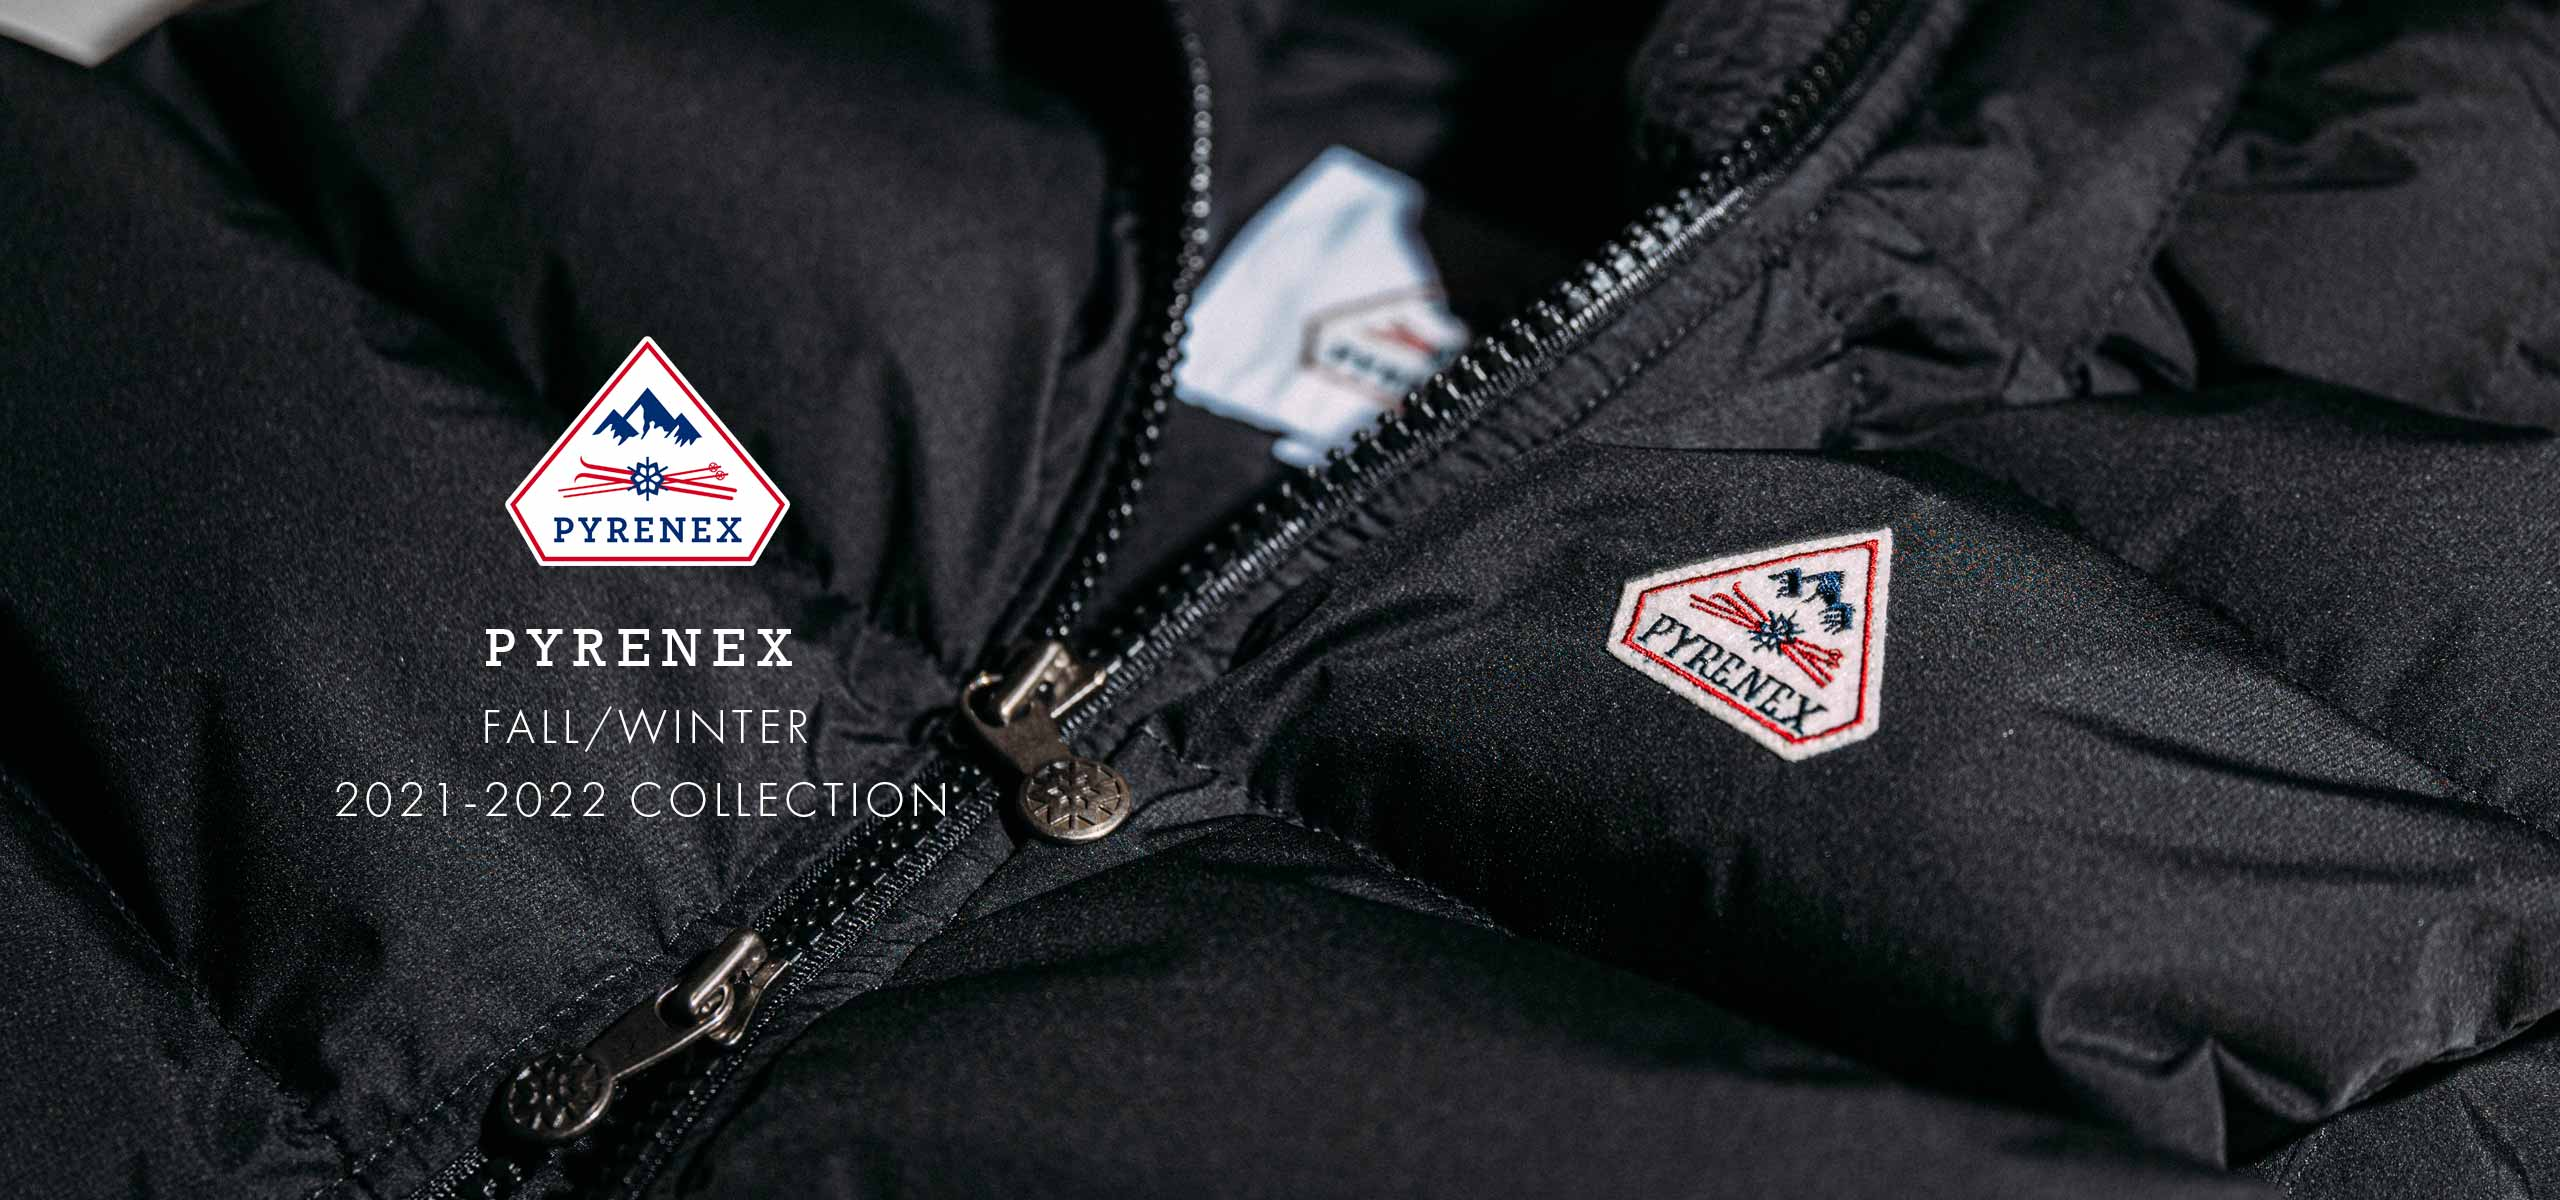 PYRENEX FALL/WINTER 2021-2022 COLLECTION